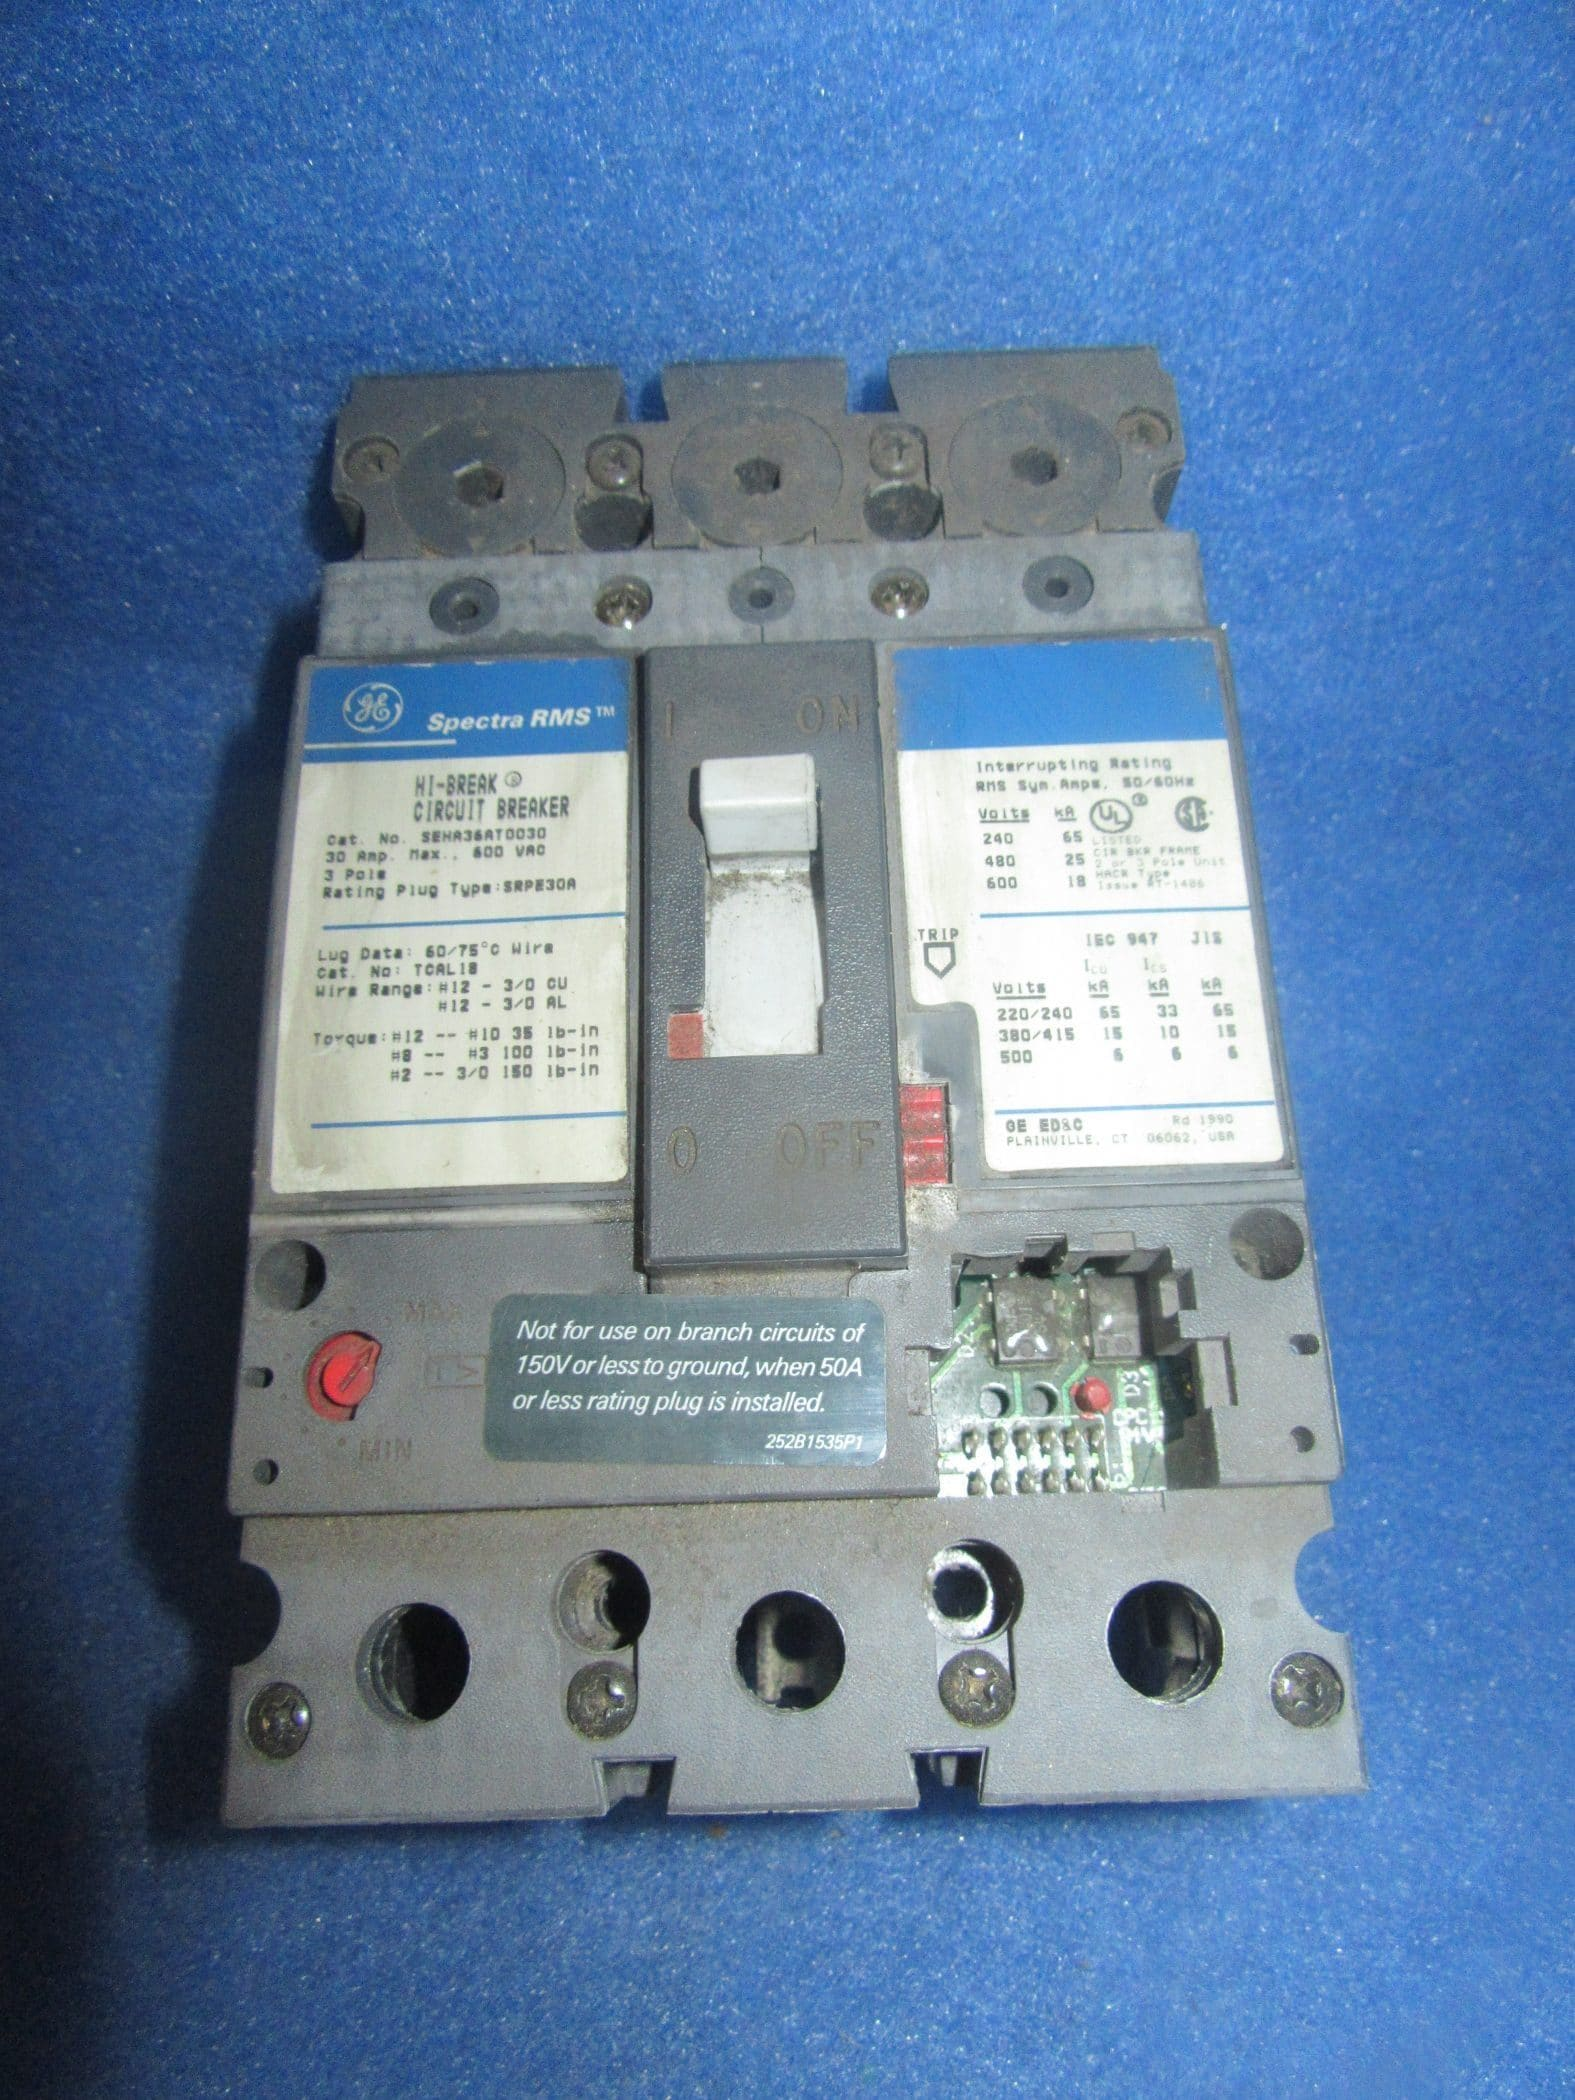 If Any Circuit Breaker Trips It Is A Sign That The Circuit Is